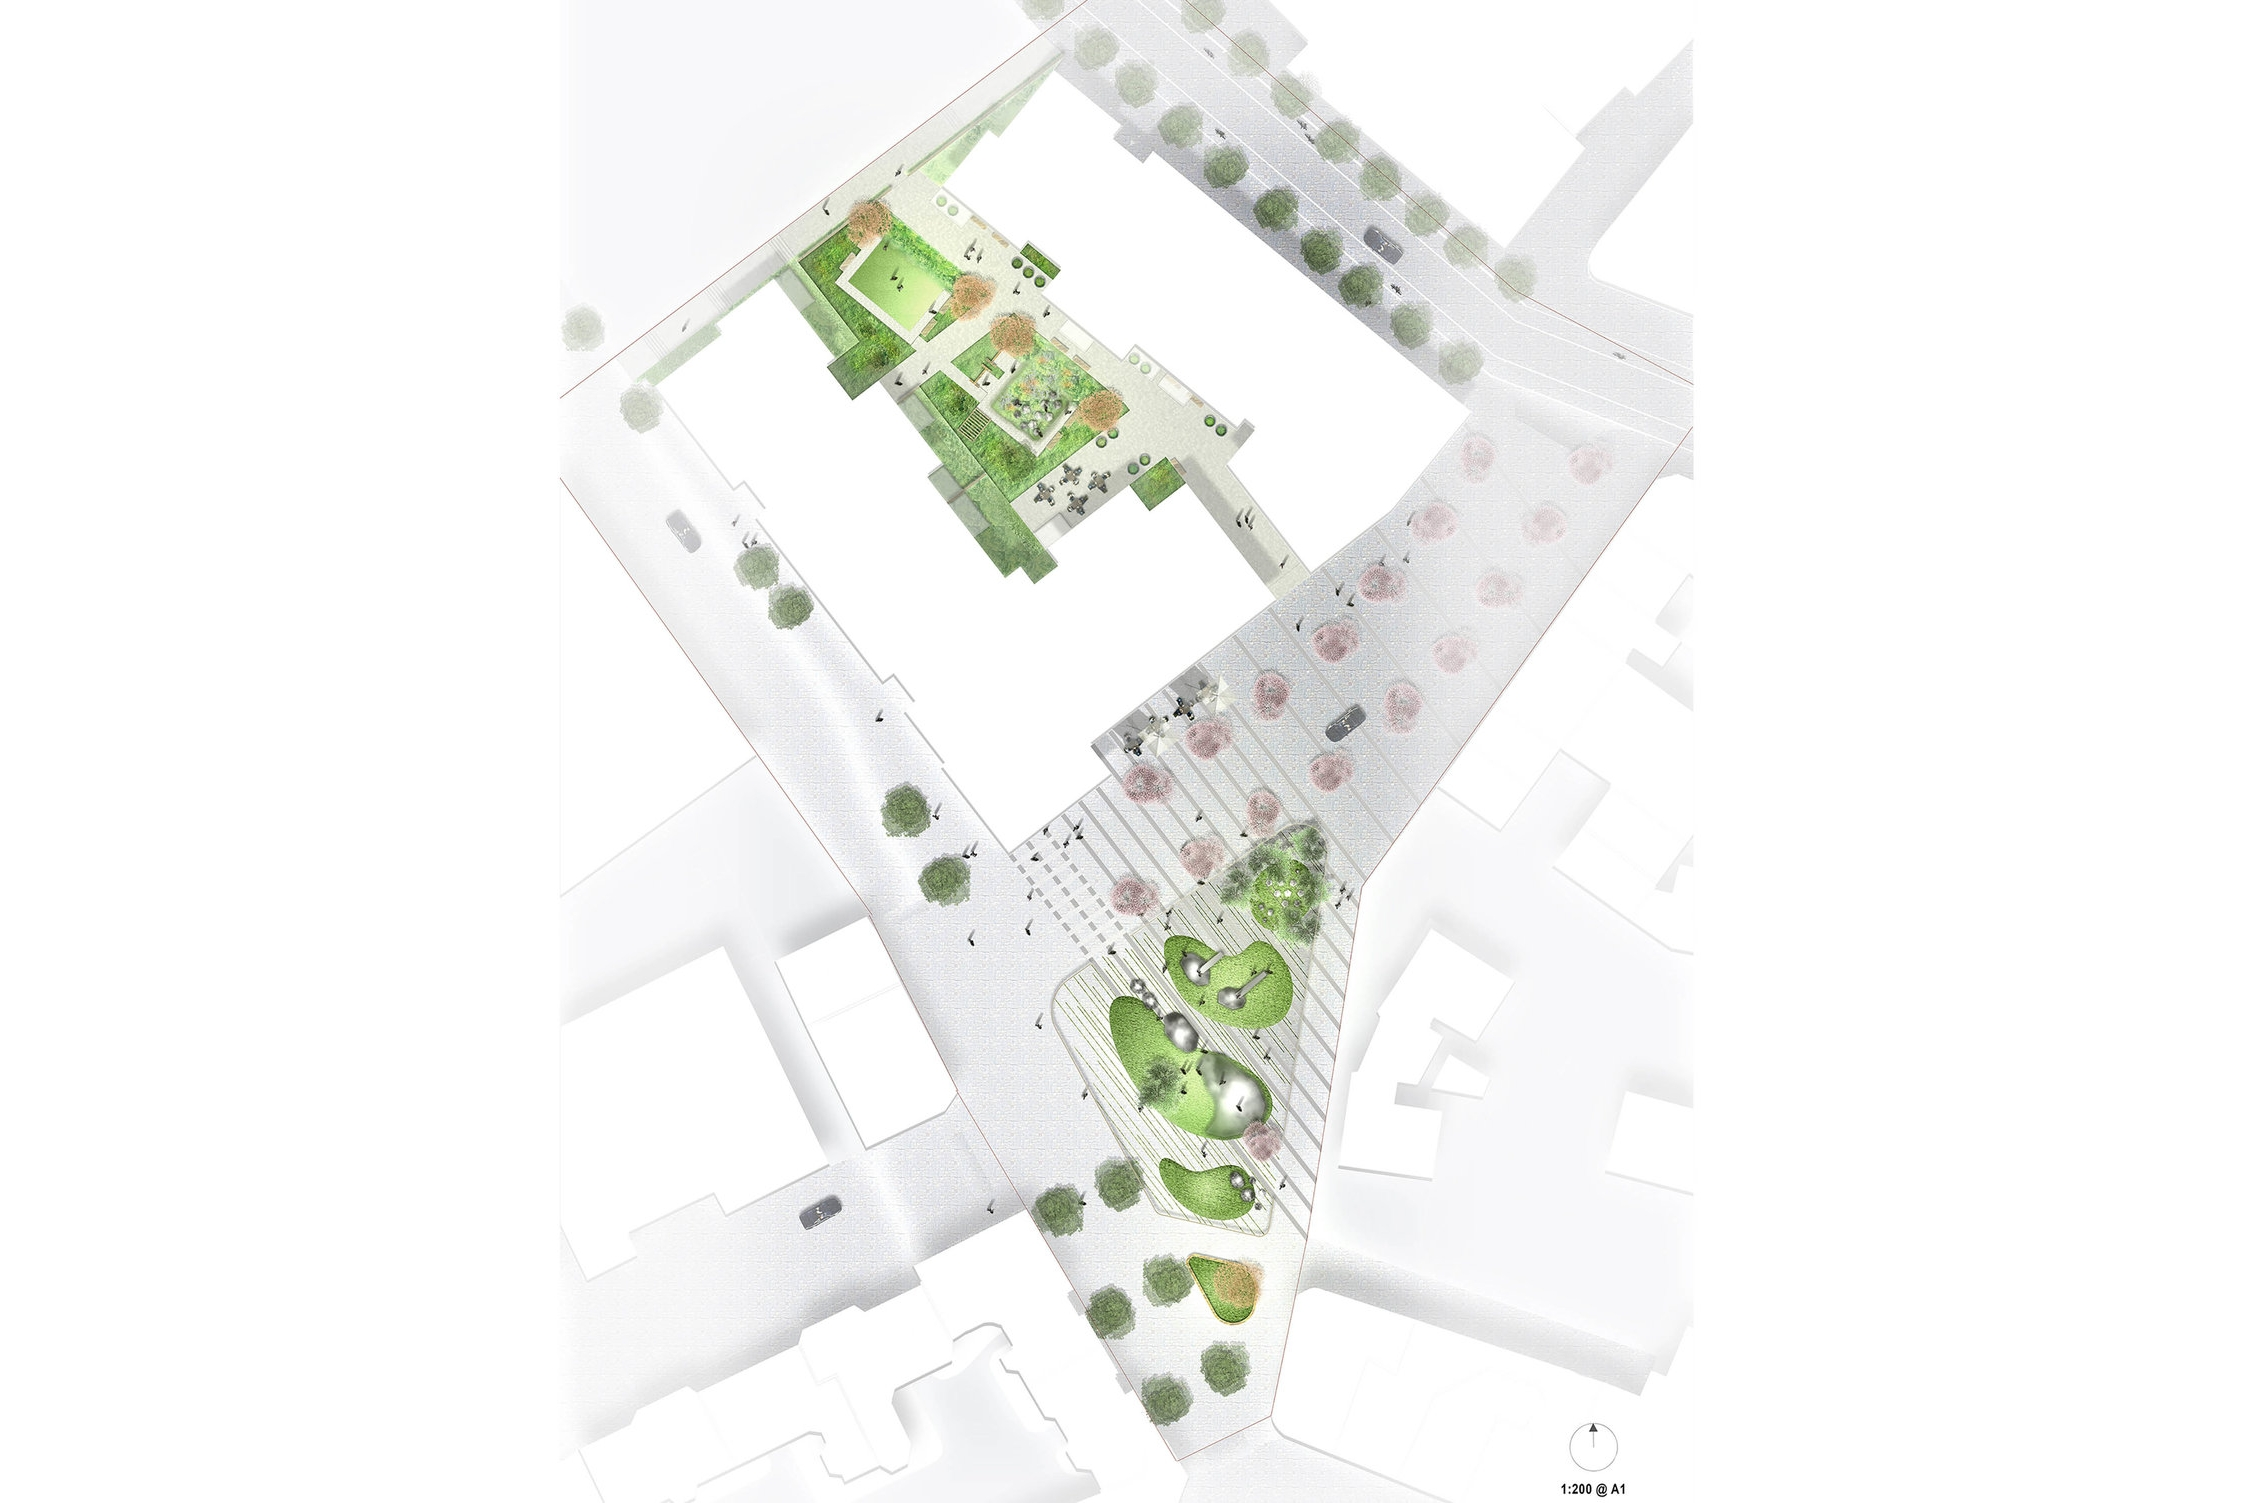 RIVAL MOUNT PLEASANT PLANS SUBMITTED    10th Oct 2016, bdonline